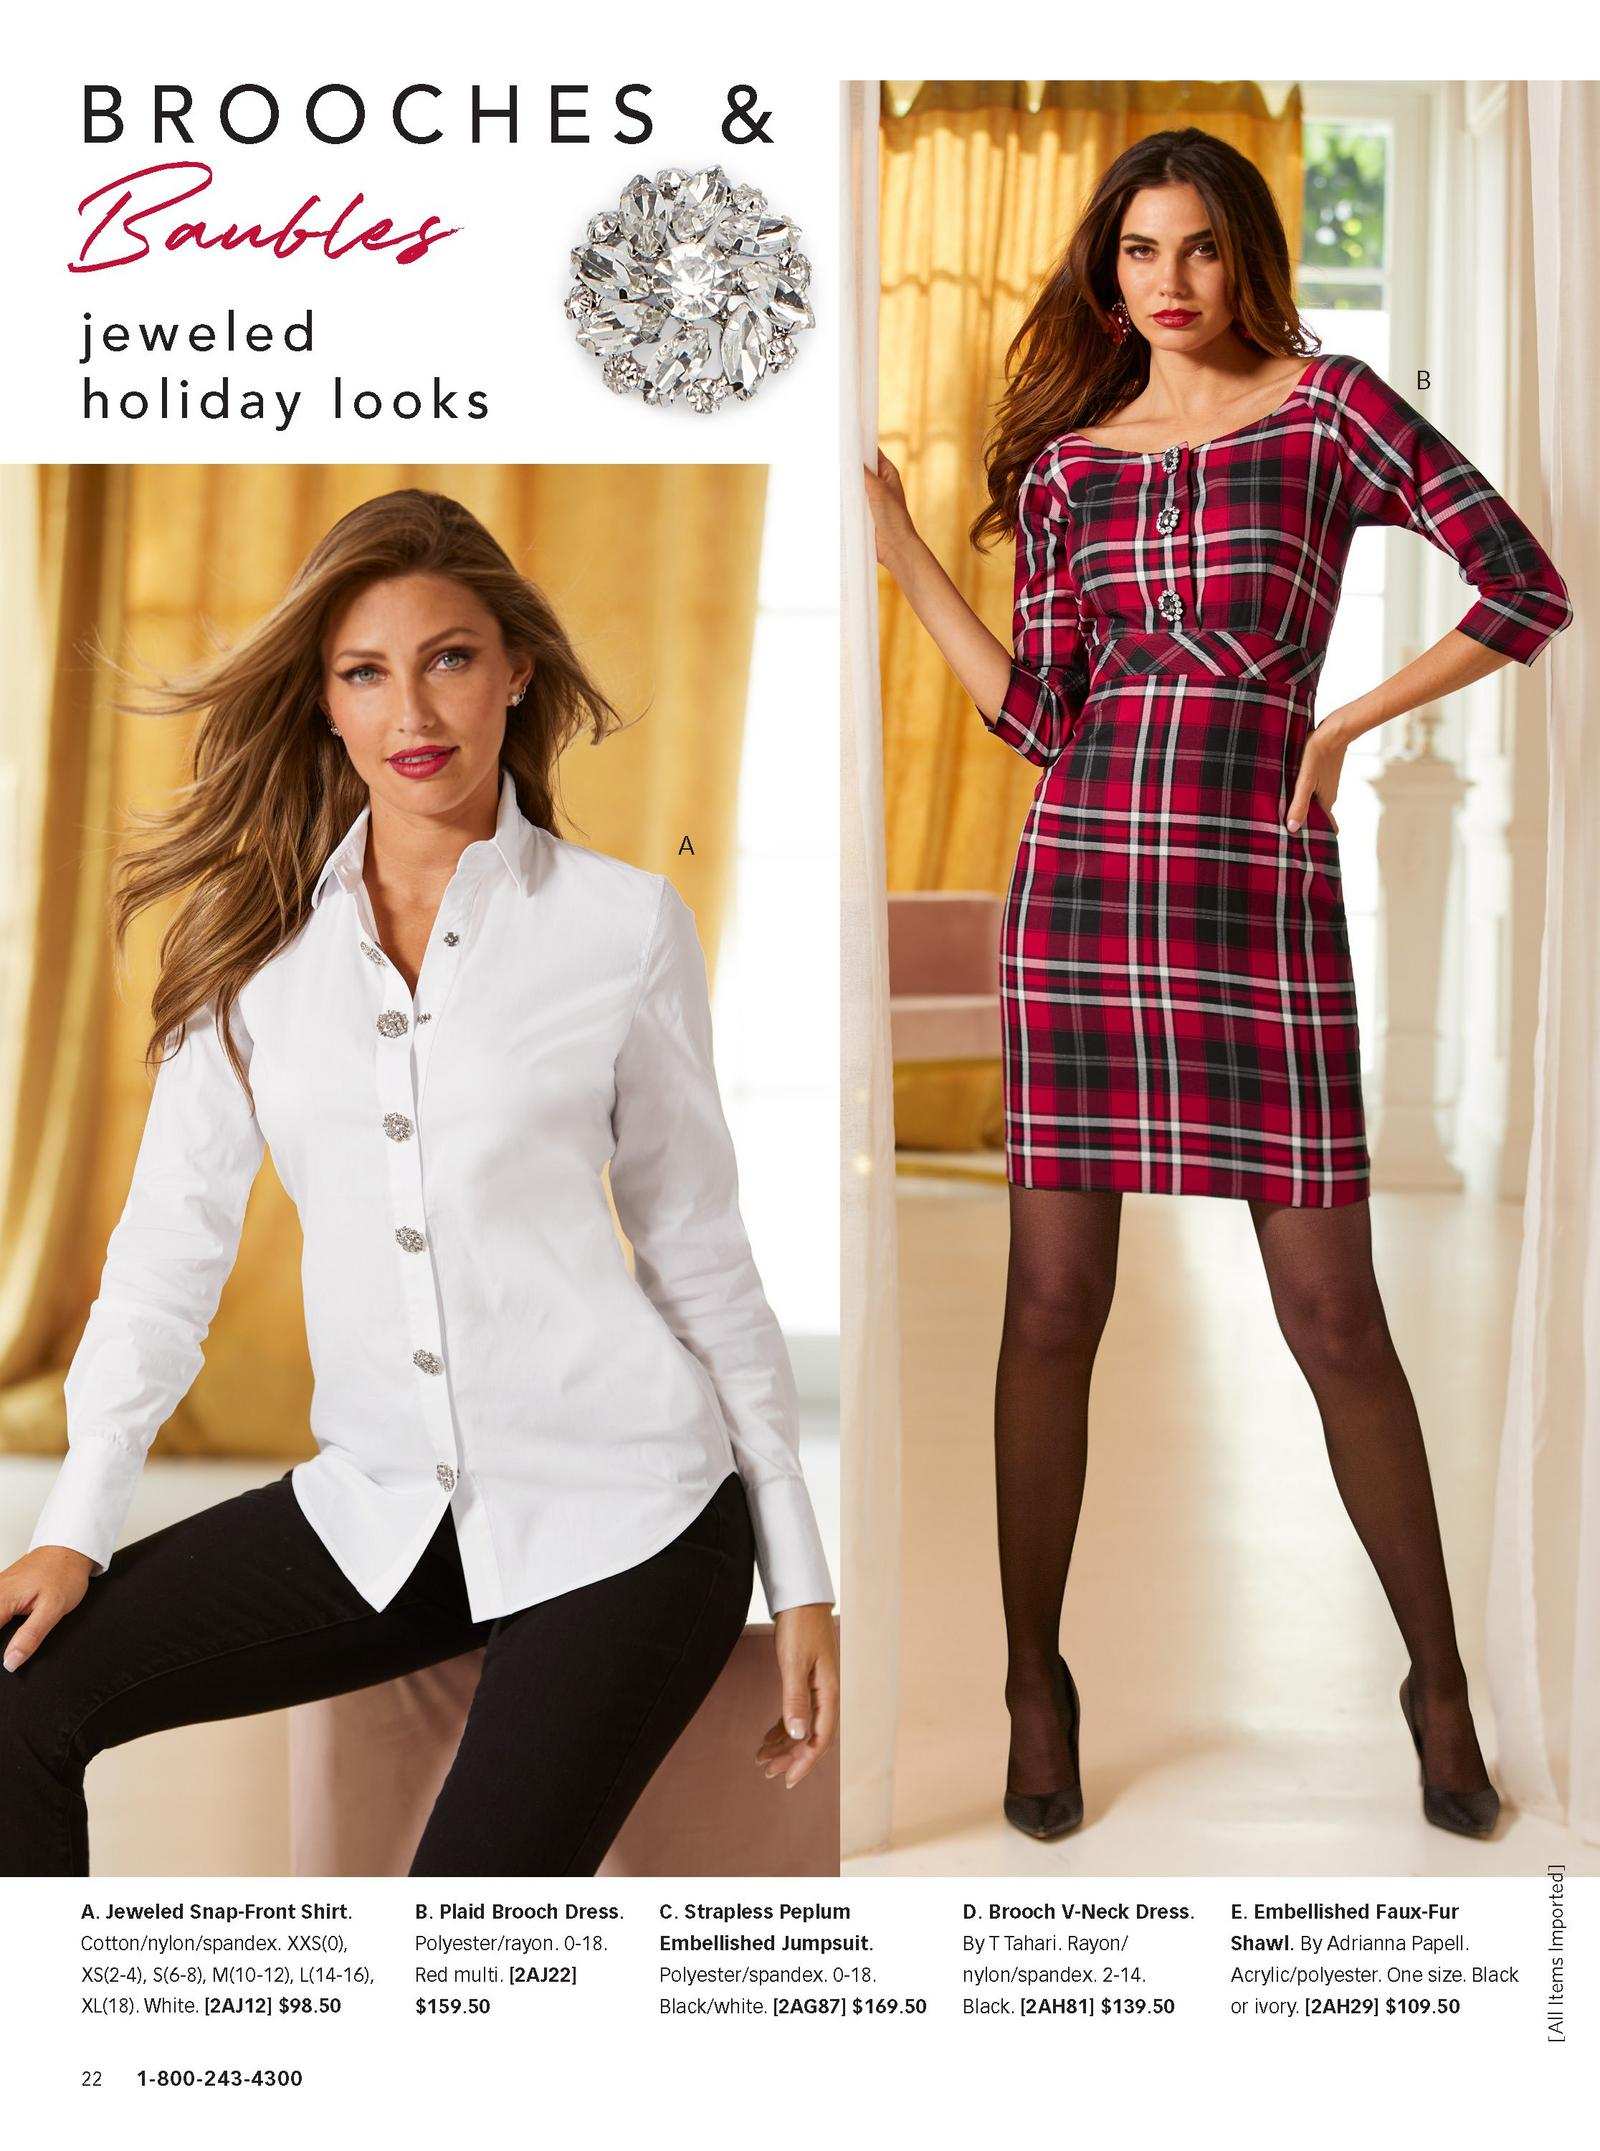 left model wearing jeweled snap-front shirt in white. right model wearing plaid brooch dress.